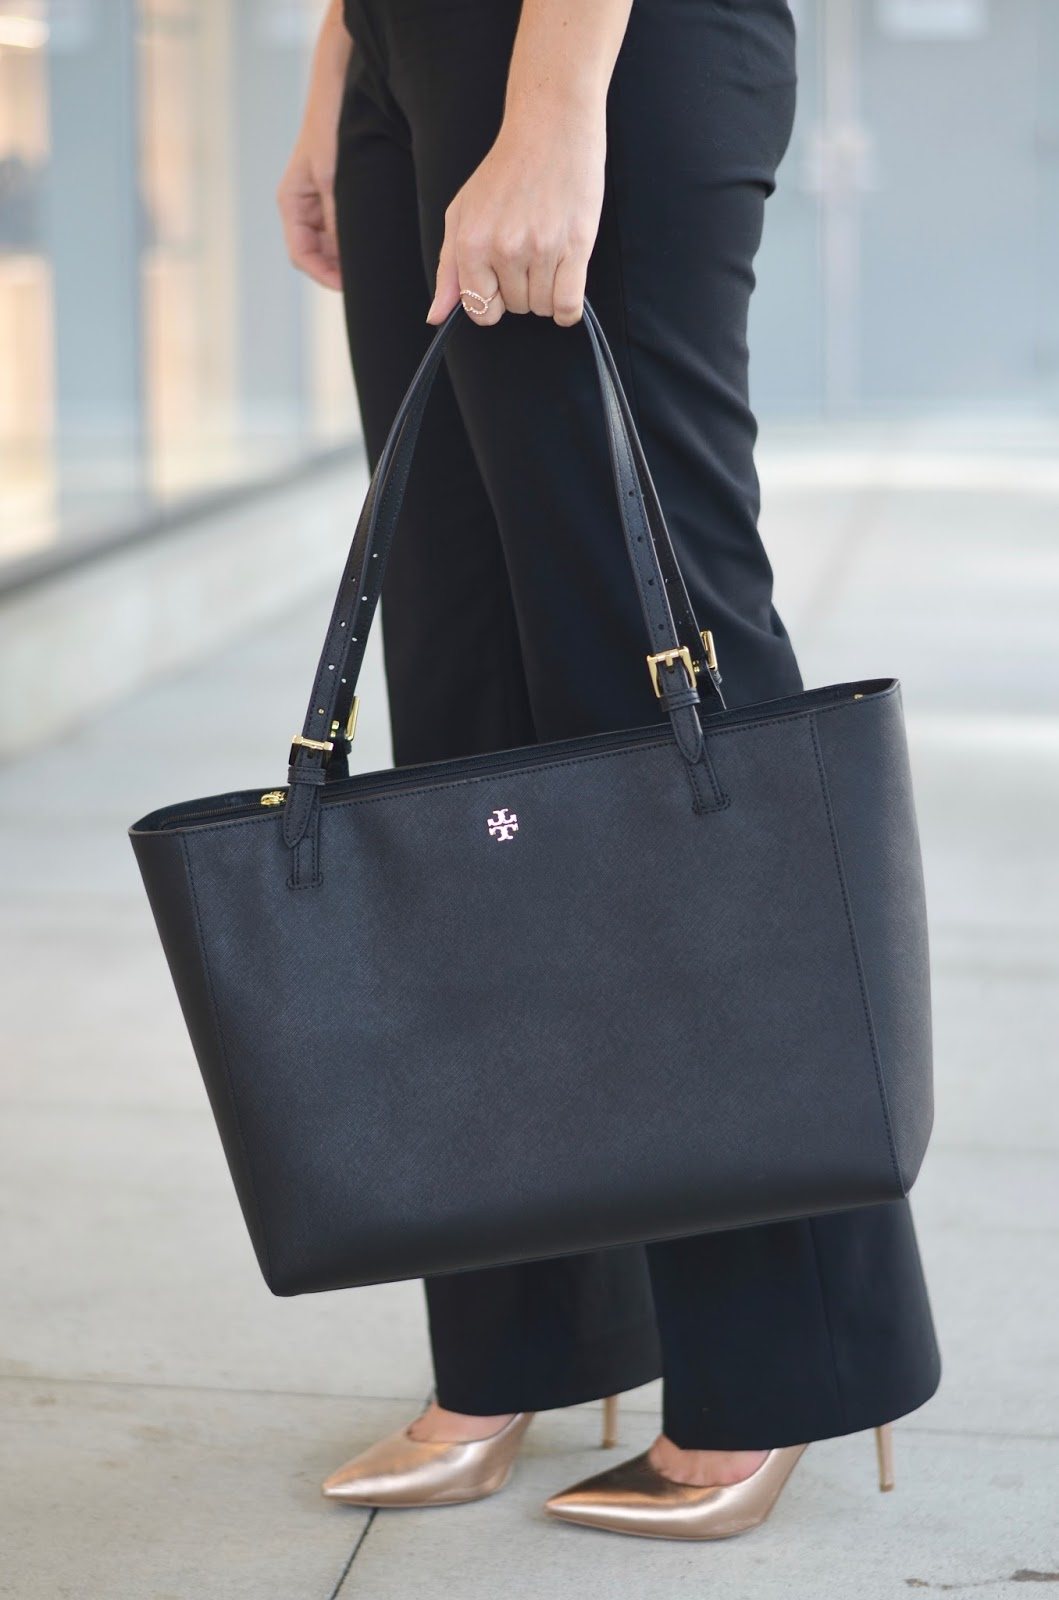 Best Handbag for Lawyers